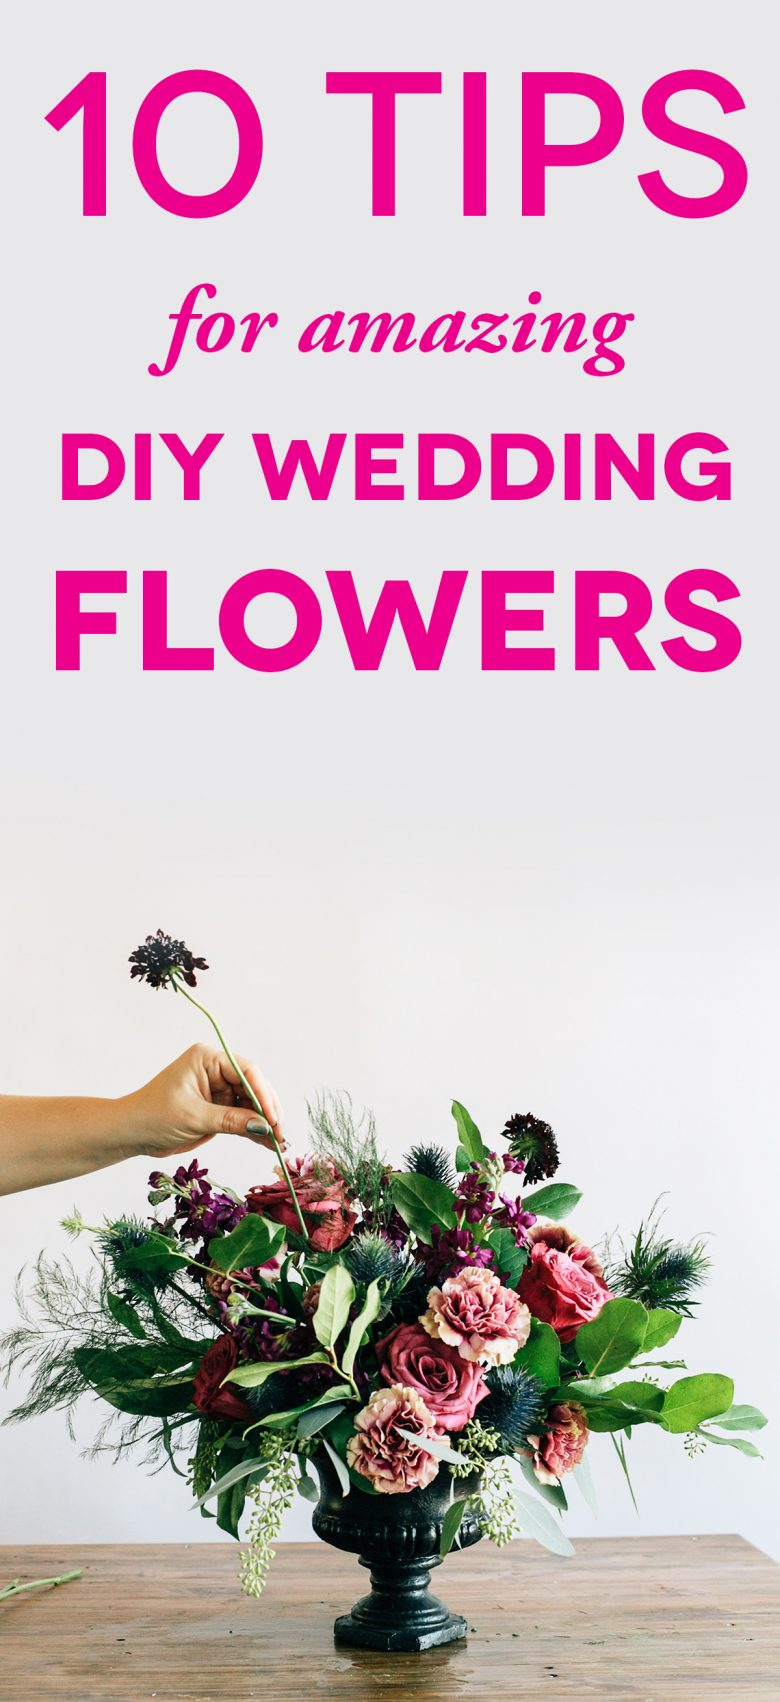 """picture of someone arranging flowers with text """"tips for DIY wedding flowers"""""""